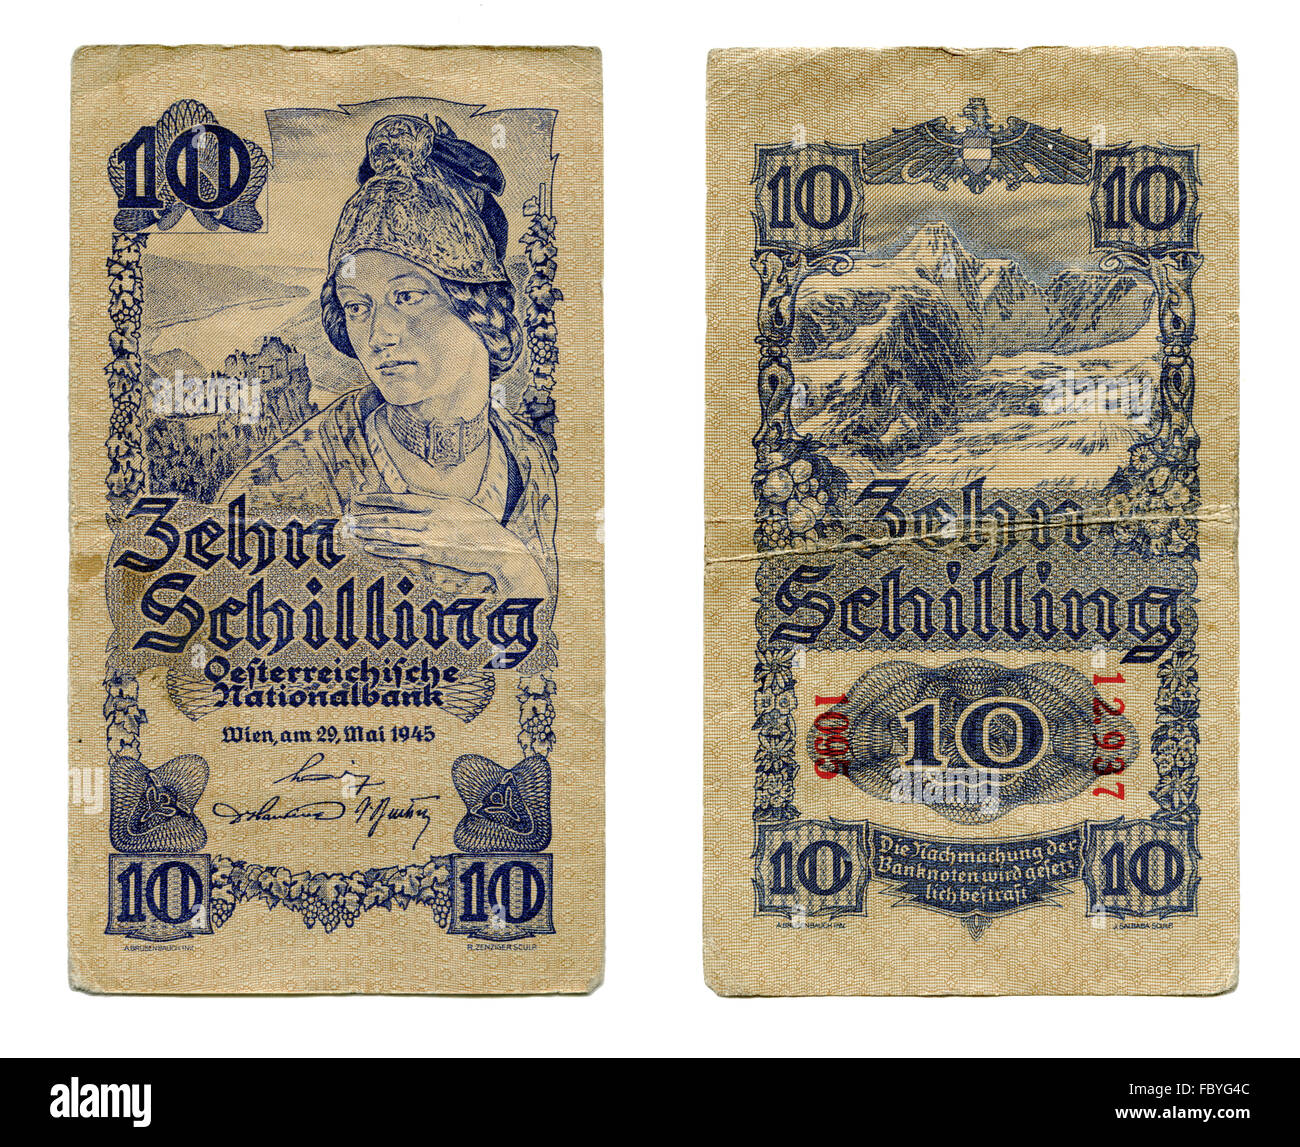 austrian ten shillings banknote from 1945 - Stock Image